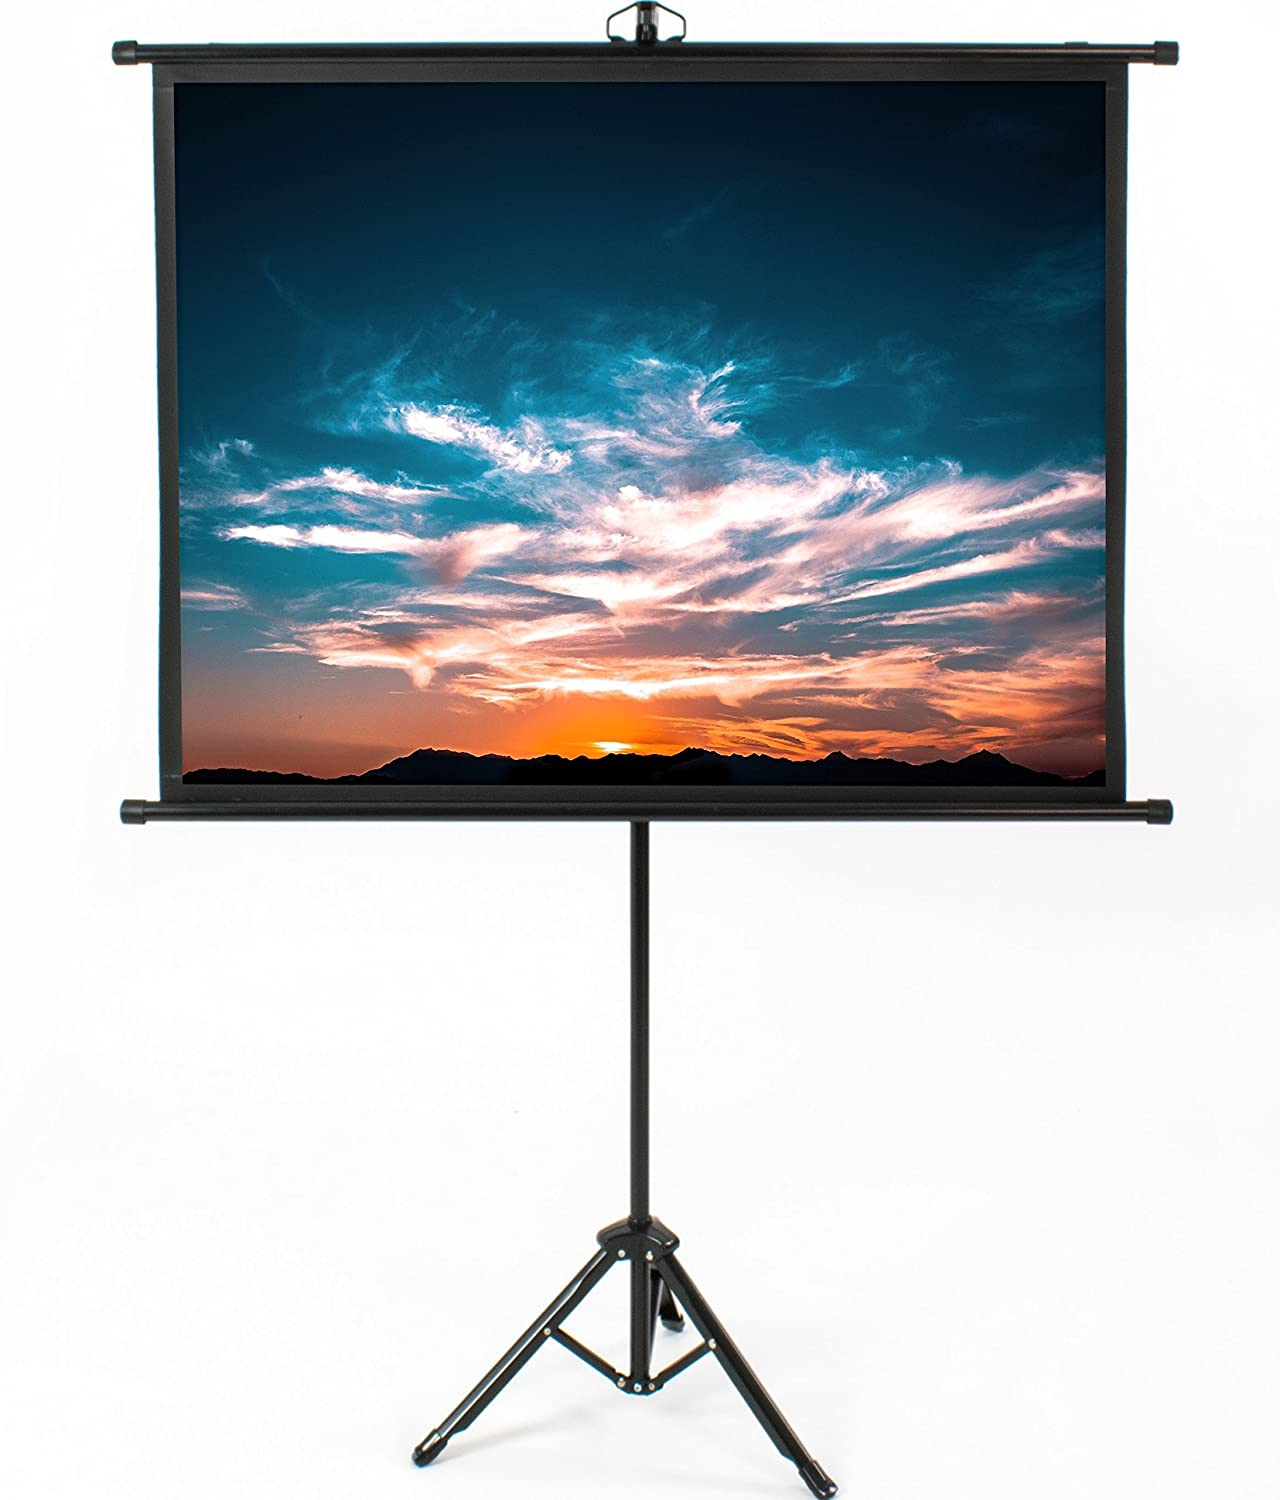 VIVO 50' Portable Indoor Outdoor Projector Screen, 50 Inch Diagonal Projection HD 4:3 Projection Pull Up Foldable Stand Tripod (PS-T-050B)